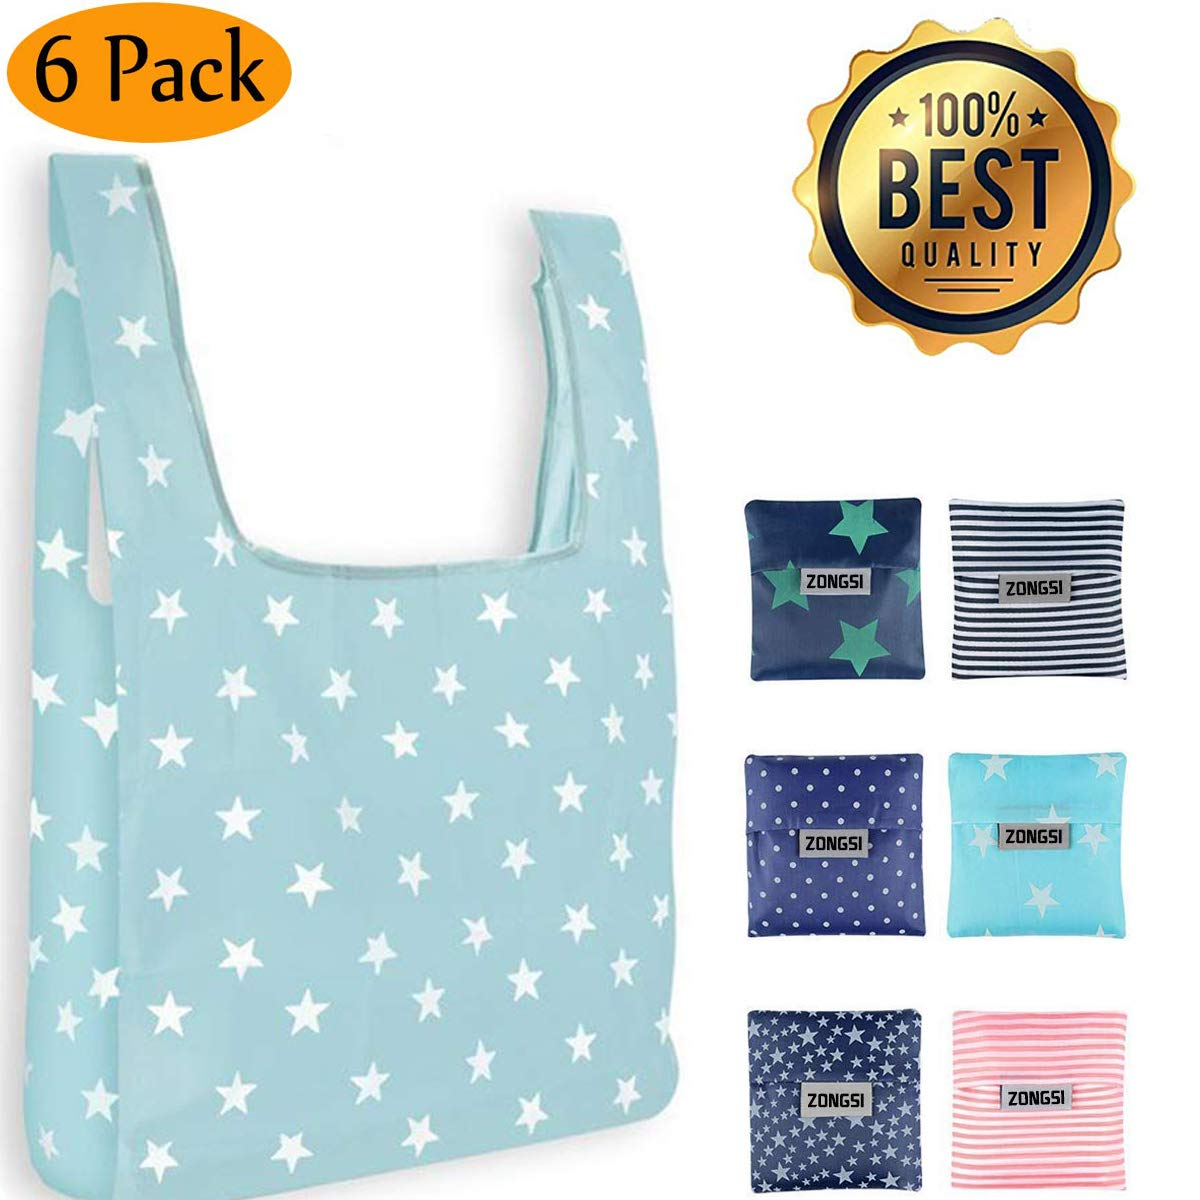 Zongsi 6 Pack Eco Friendly Large Reusable Grocery Bags Waterproof Nylon Shopping Bag fits in Pocket